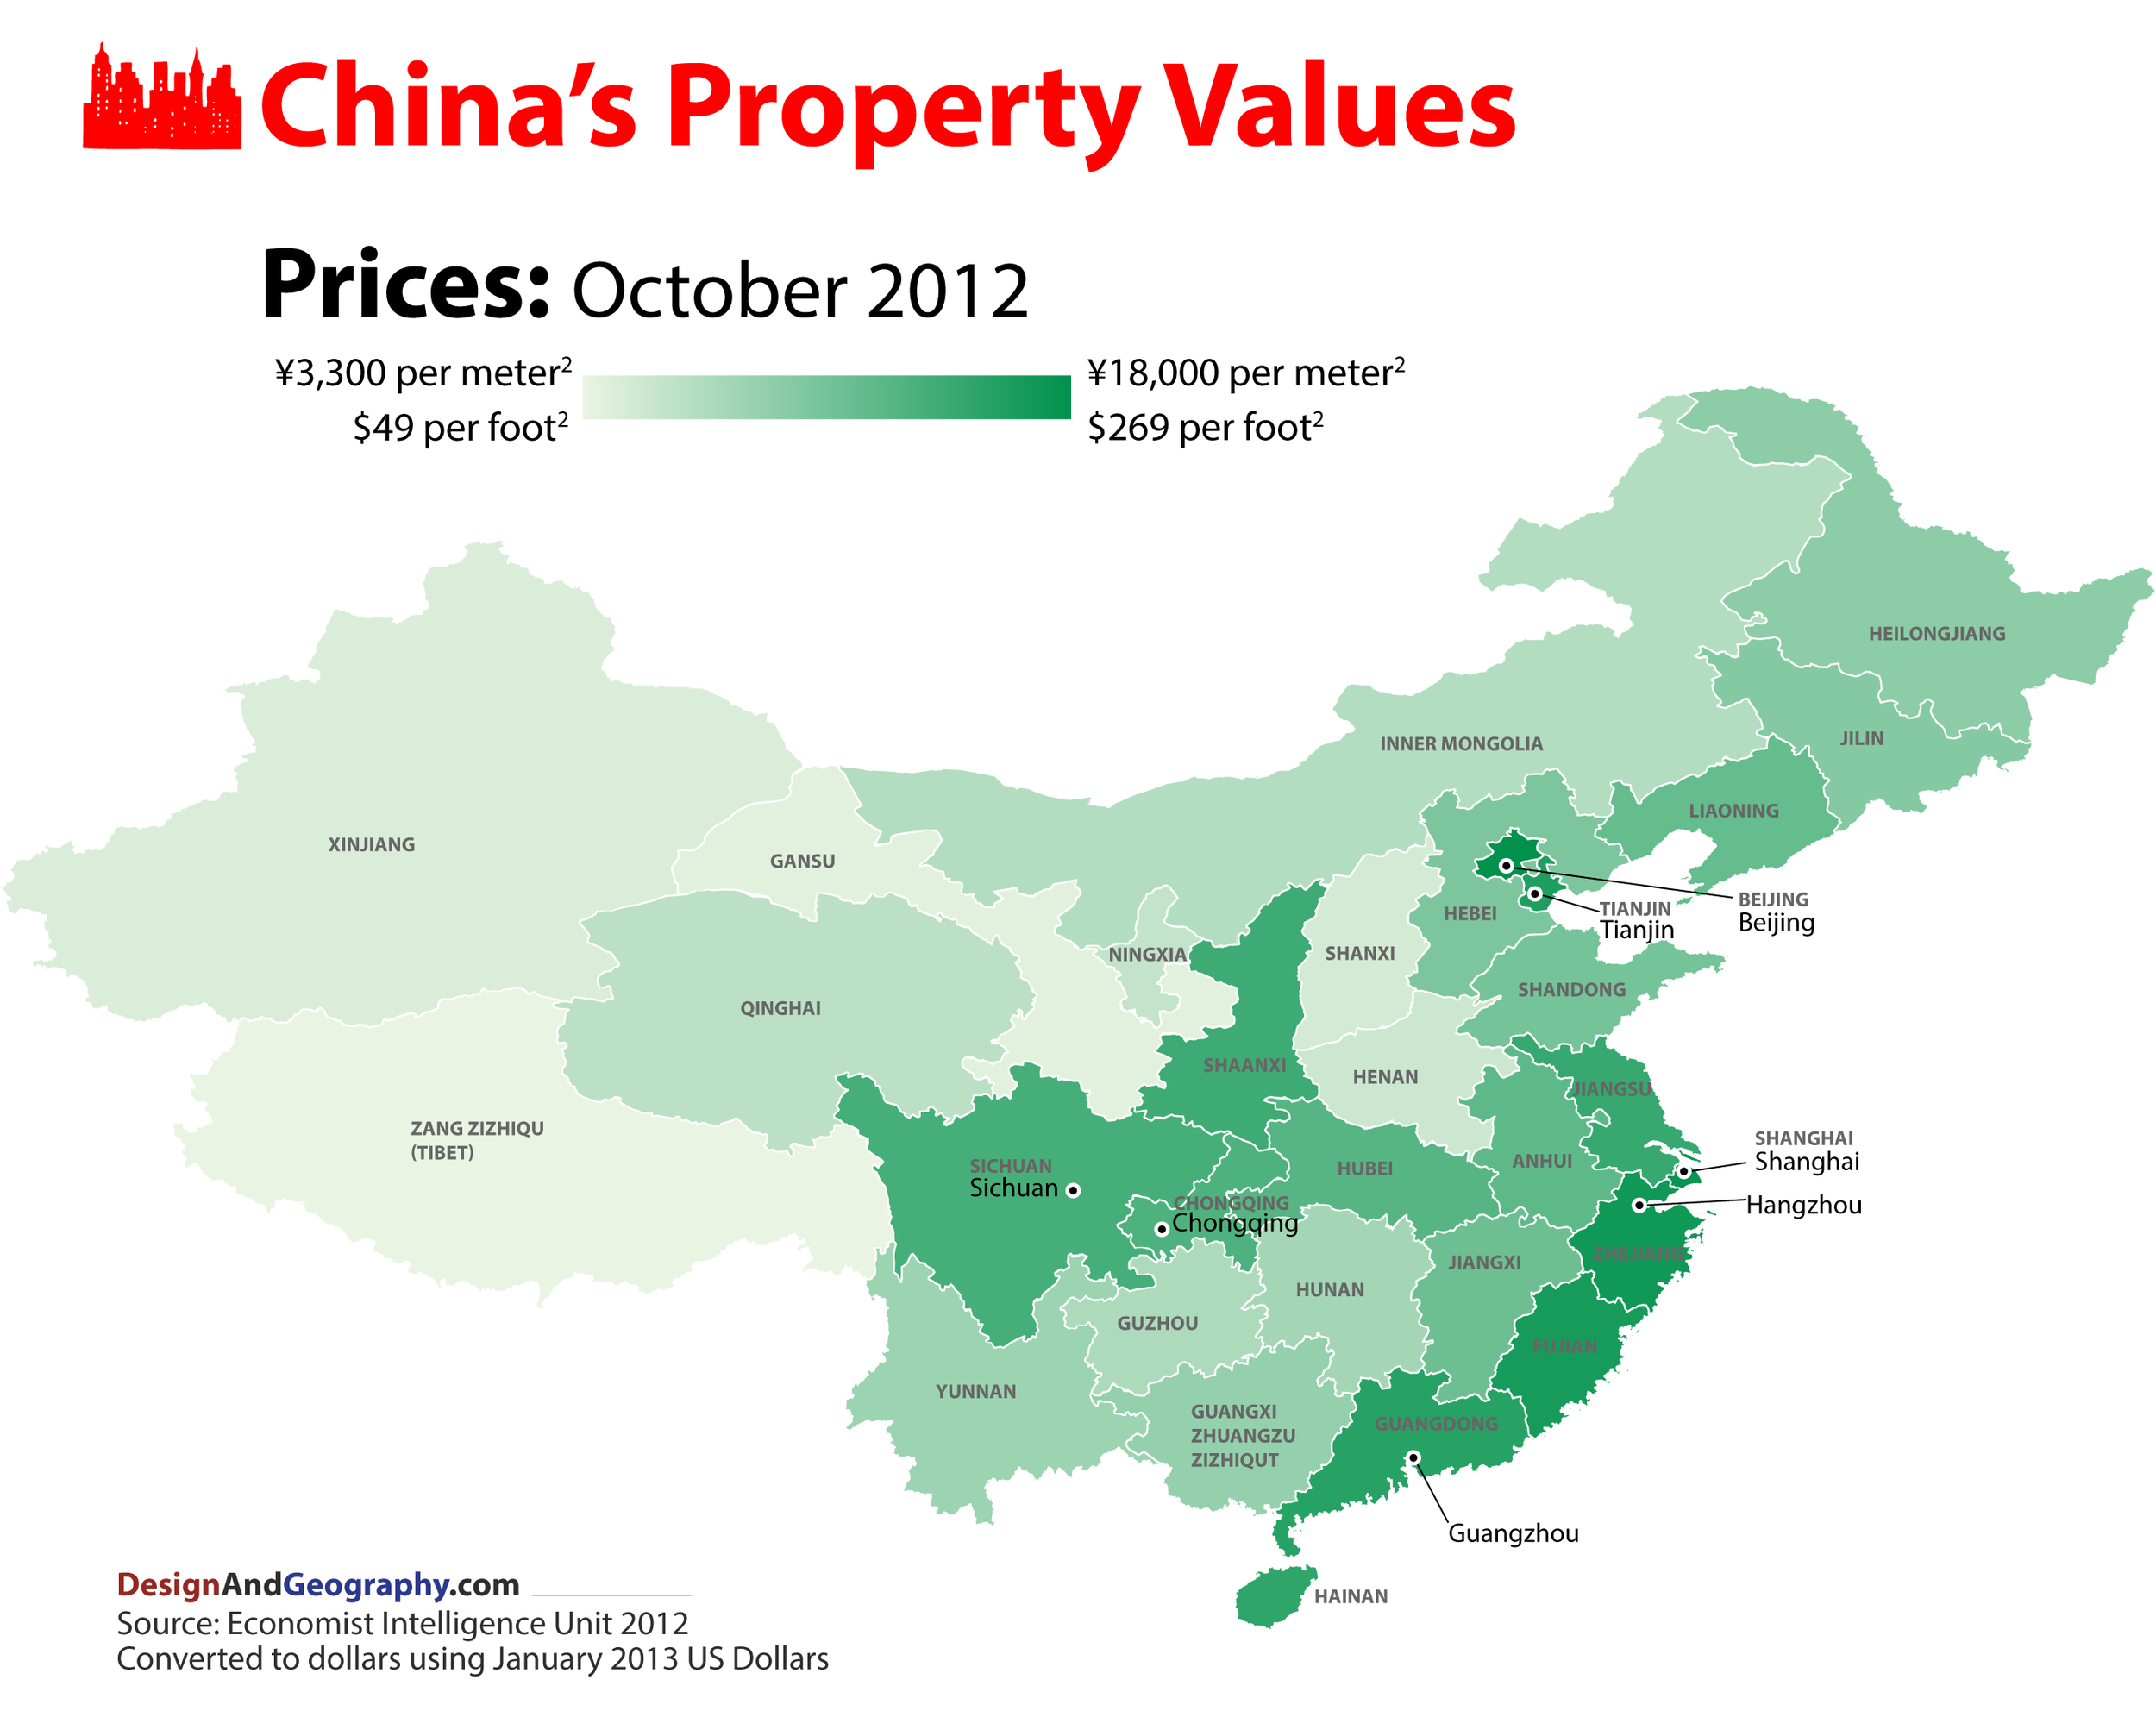 ChinaMap_Oct2012Prices-2.png